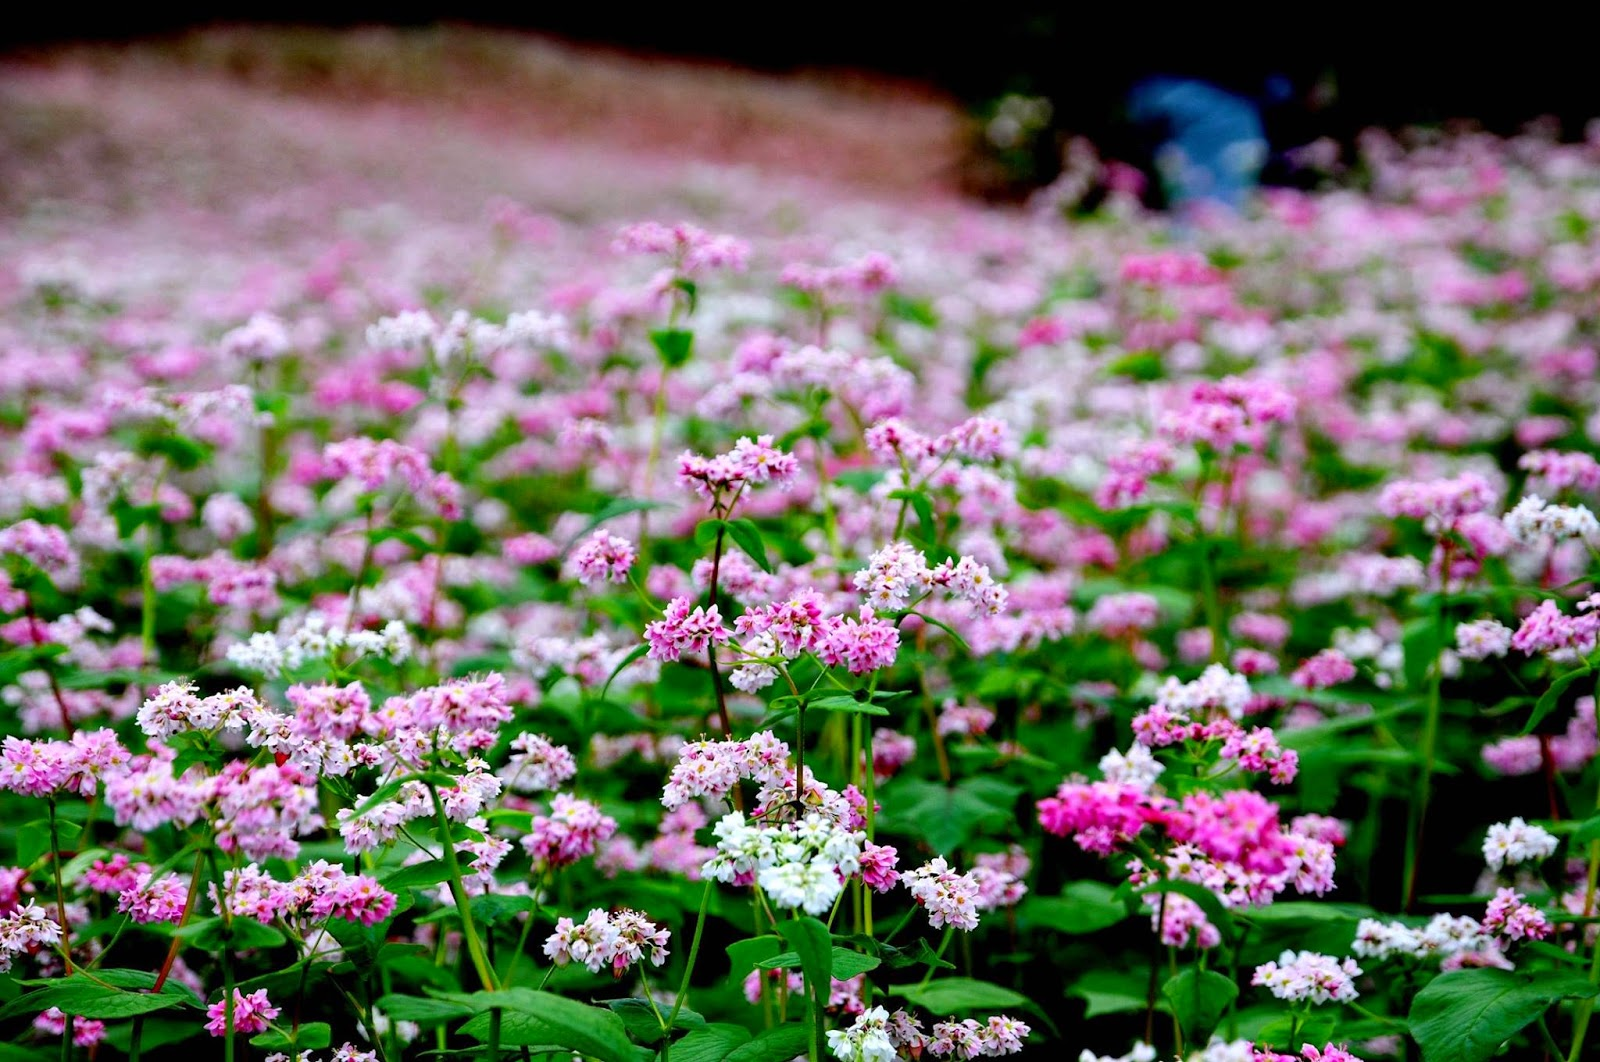 The violet buckwheat flowers contribute to the beauty of Ha Giang in October